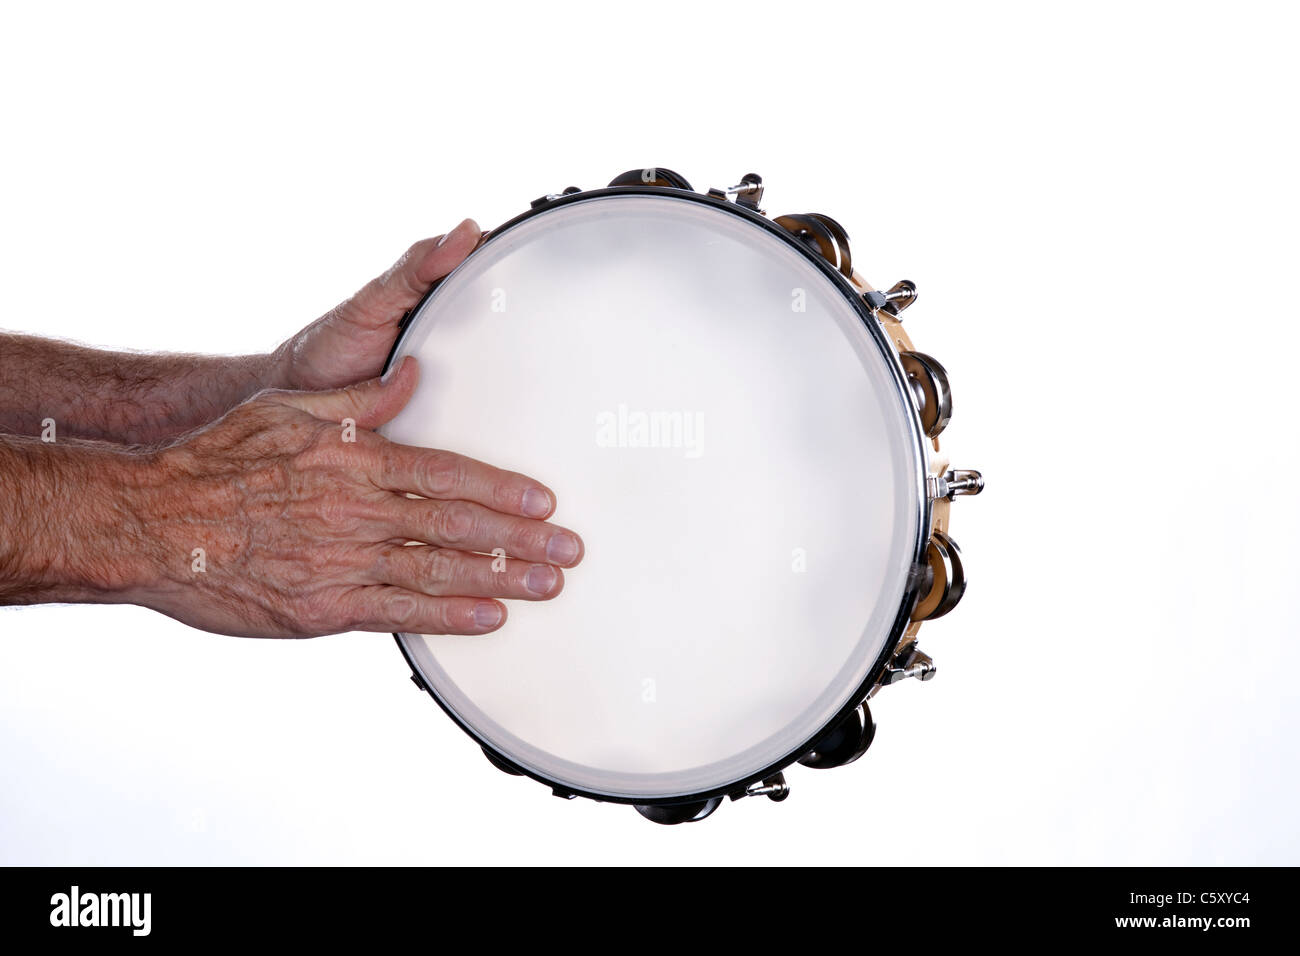 A tambourine being played by a man's hands isolated against a white background. - Stock Image